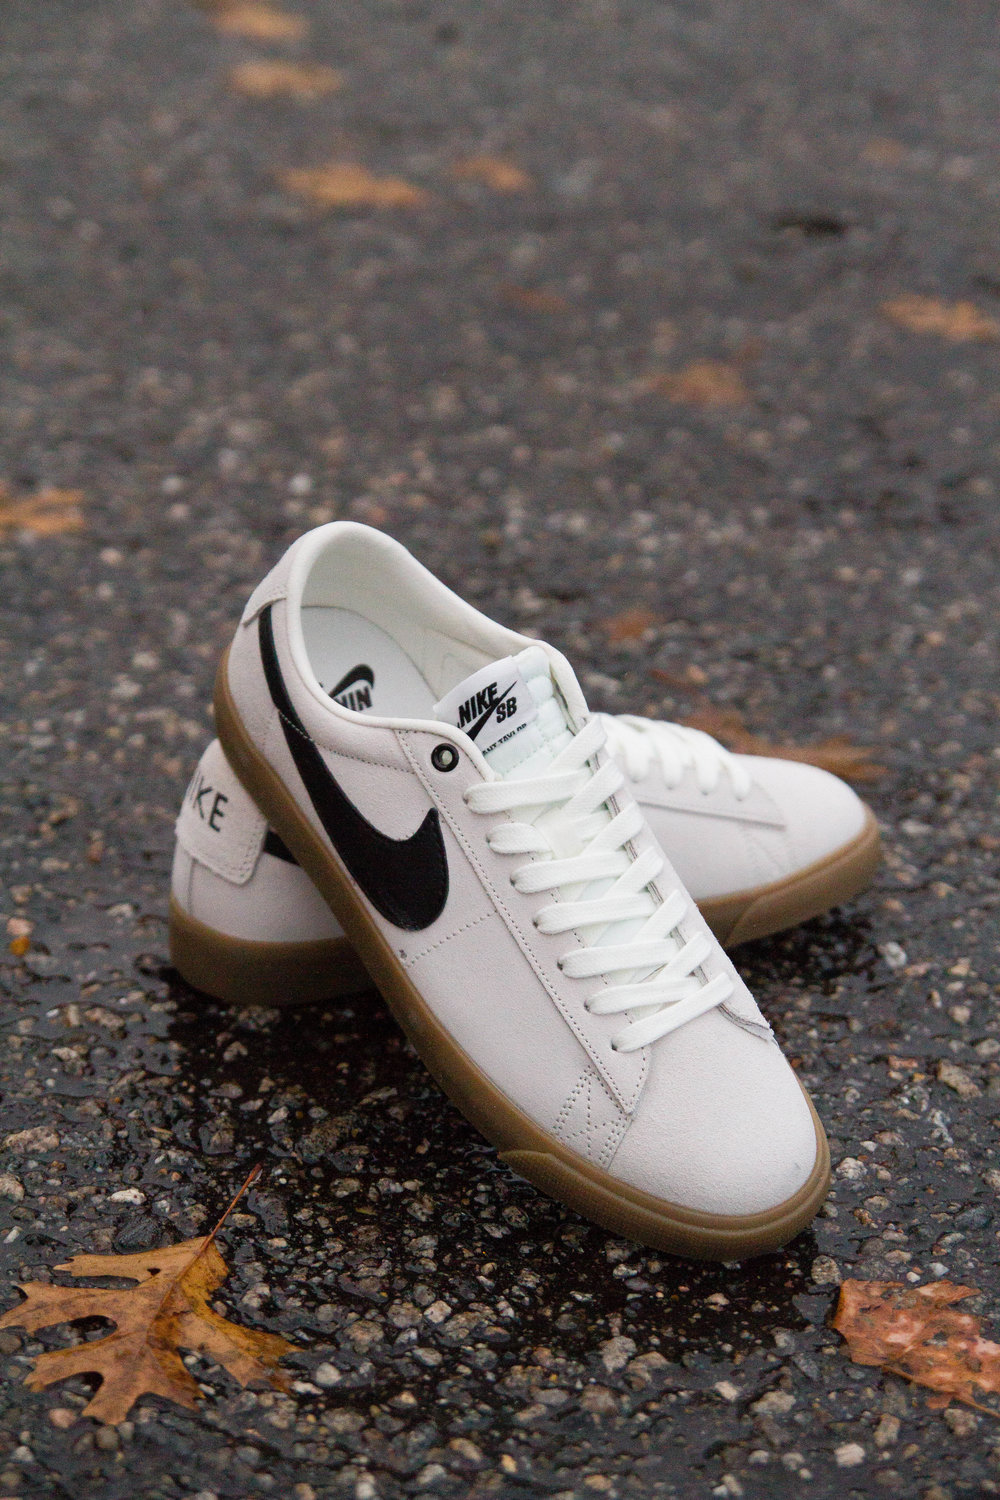 sports shoes 184ea 8b862 ... discount code for nike sb blazer low gt in ivory black gum now  available a59ca 277f2